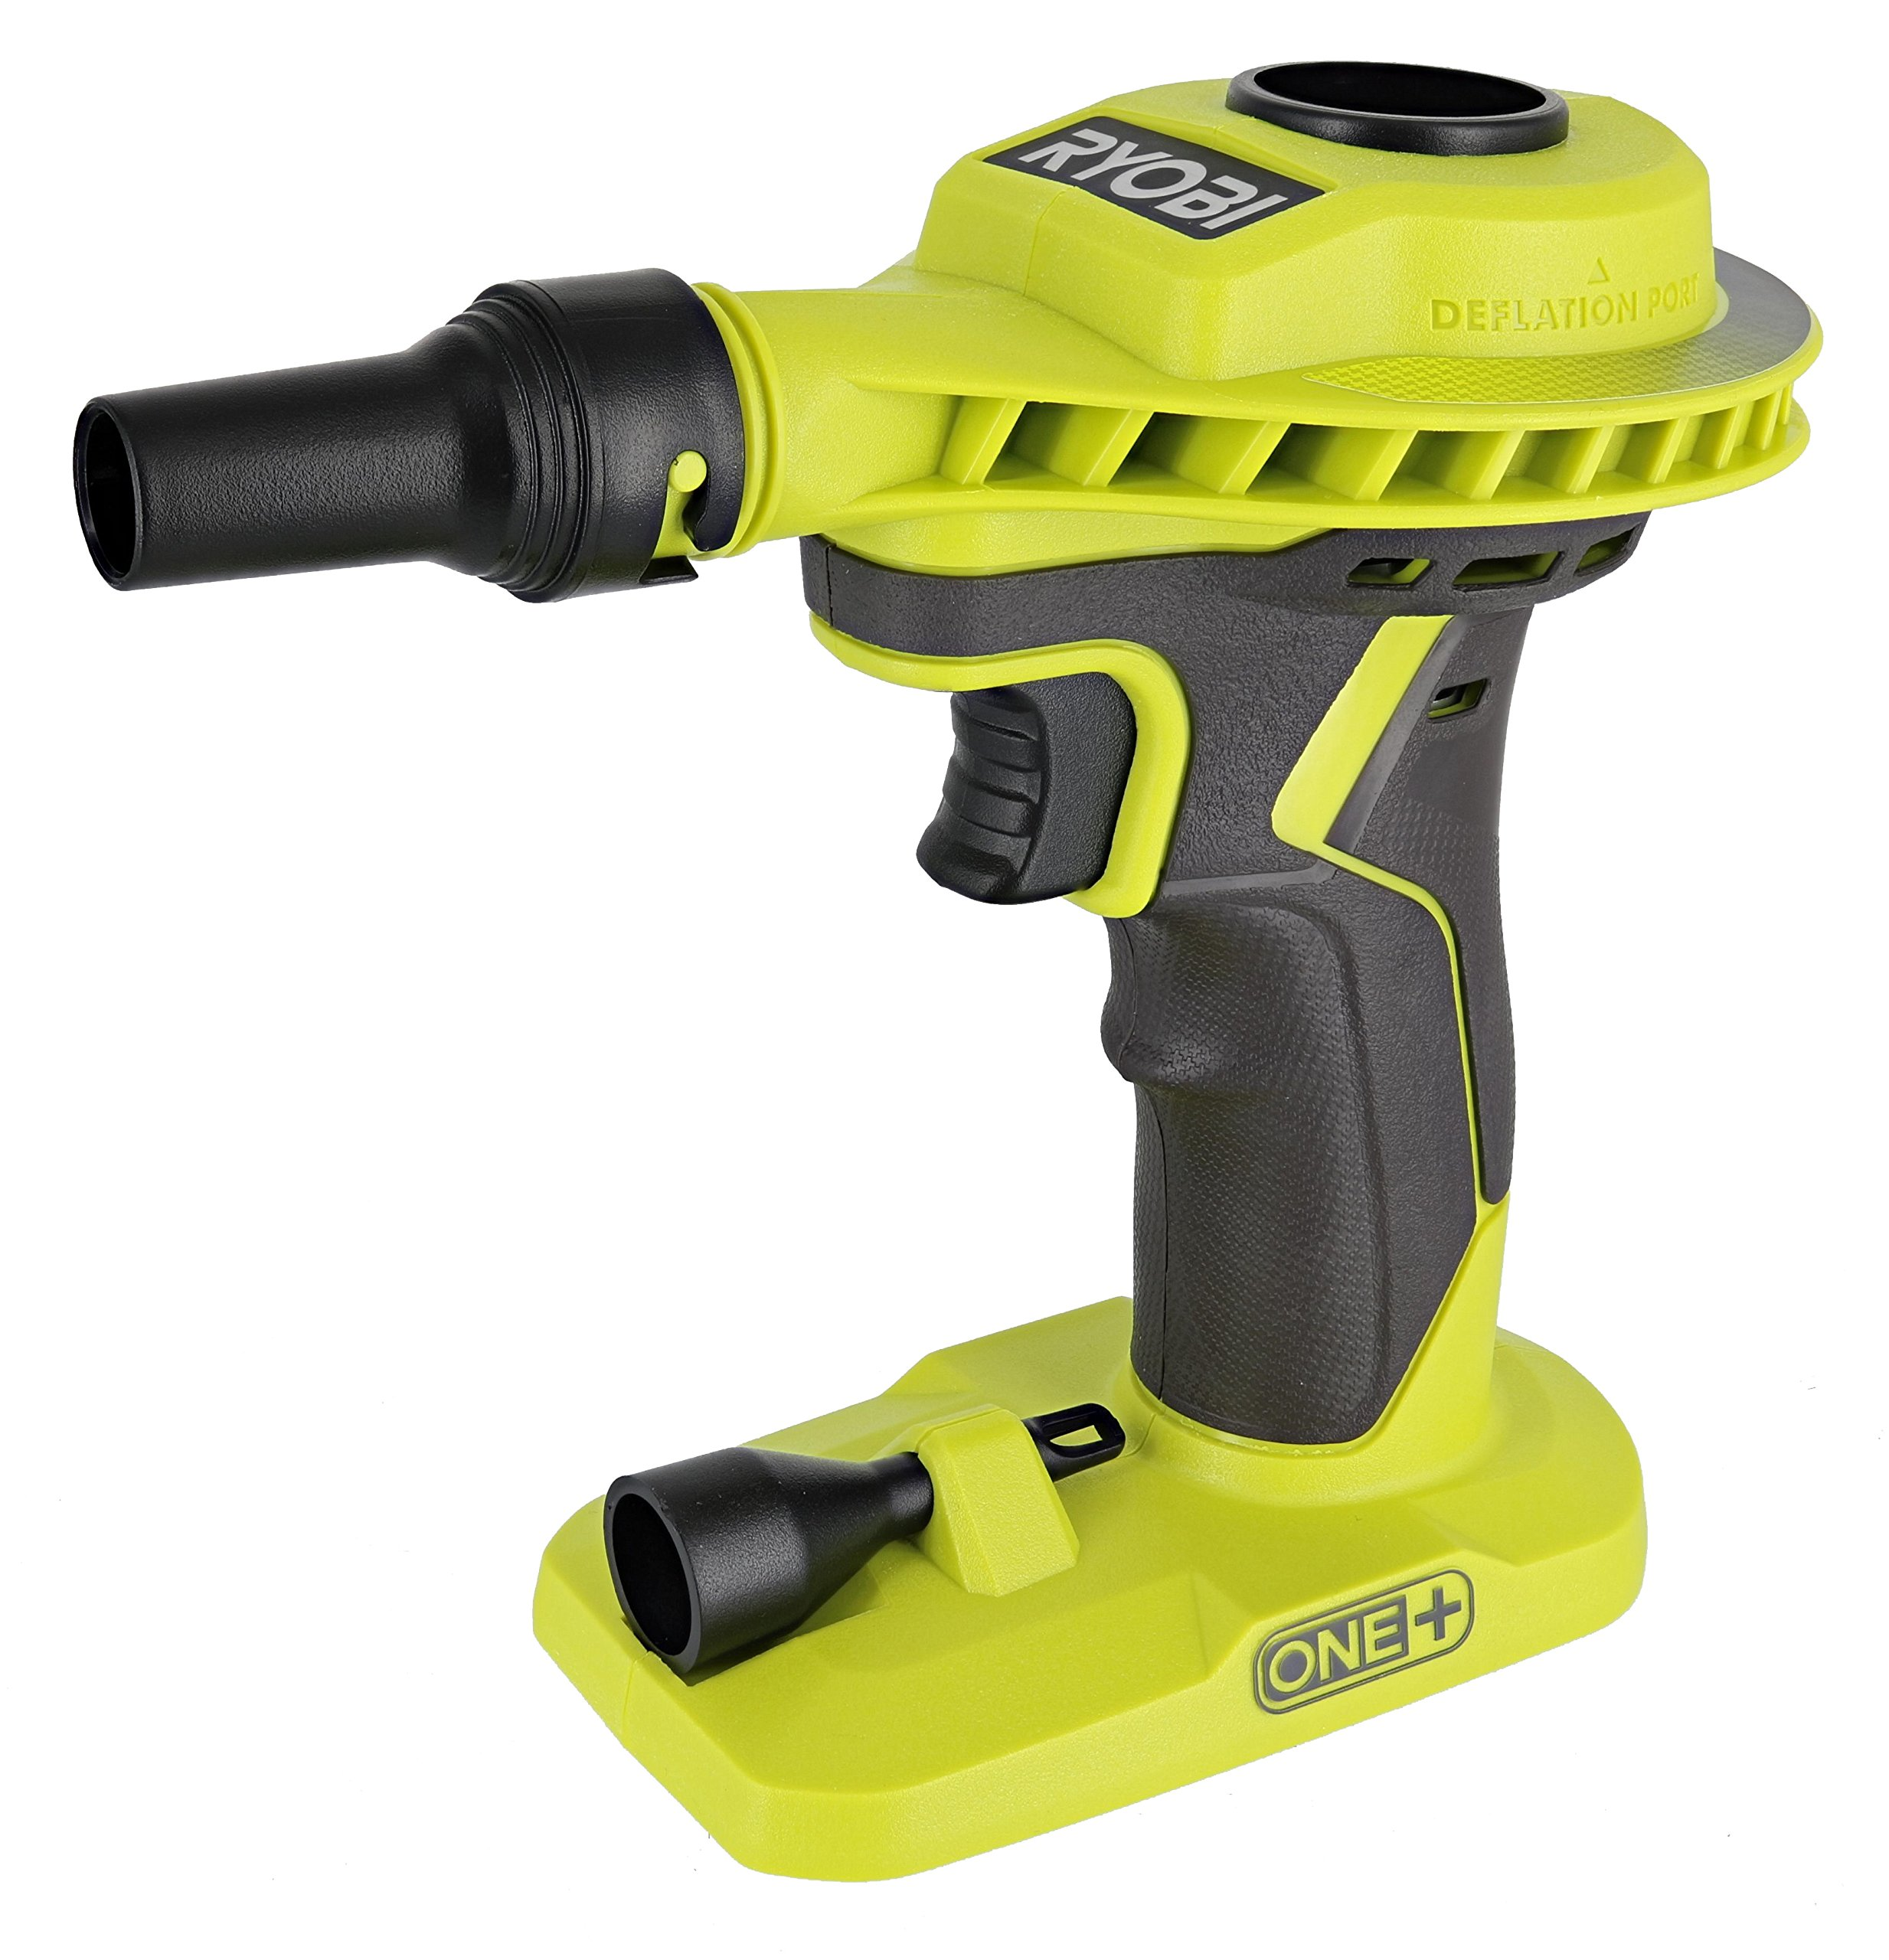 Ryobi P738 18V One+ Lithium Ion 18V One+ High Volume Power Inflator / Deflator for Mattresses and Recreational Inflatables